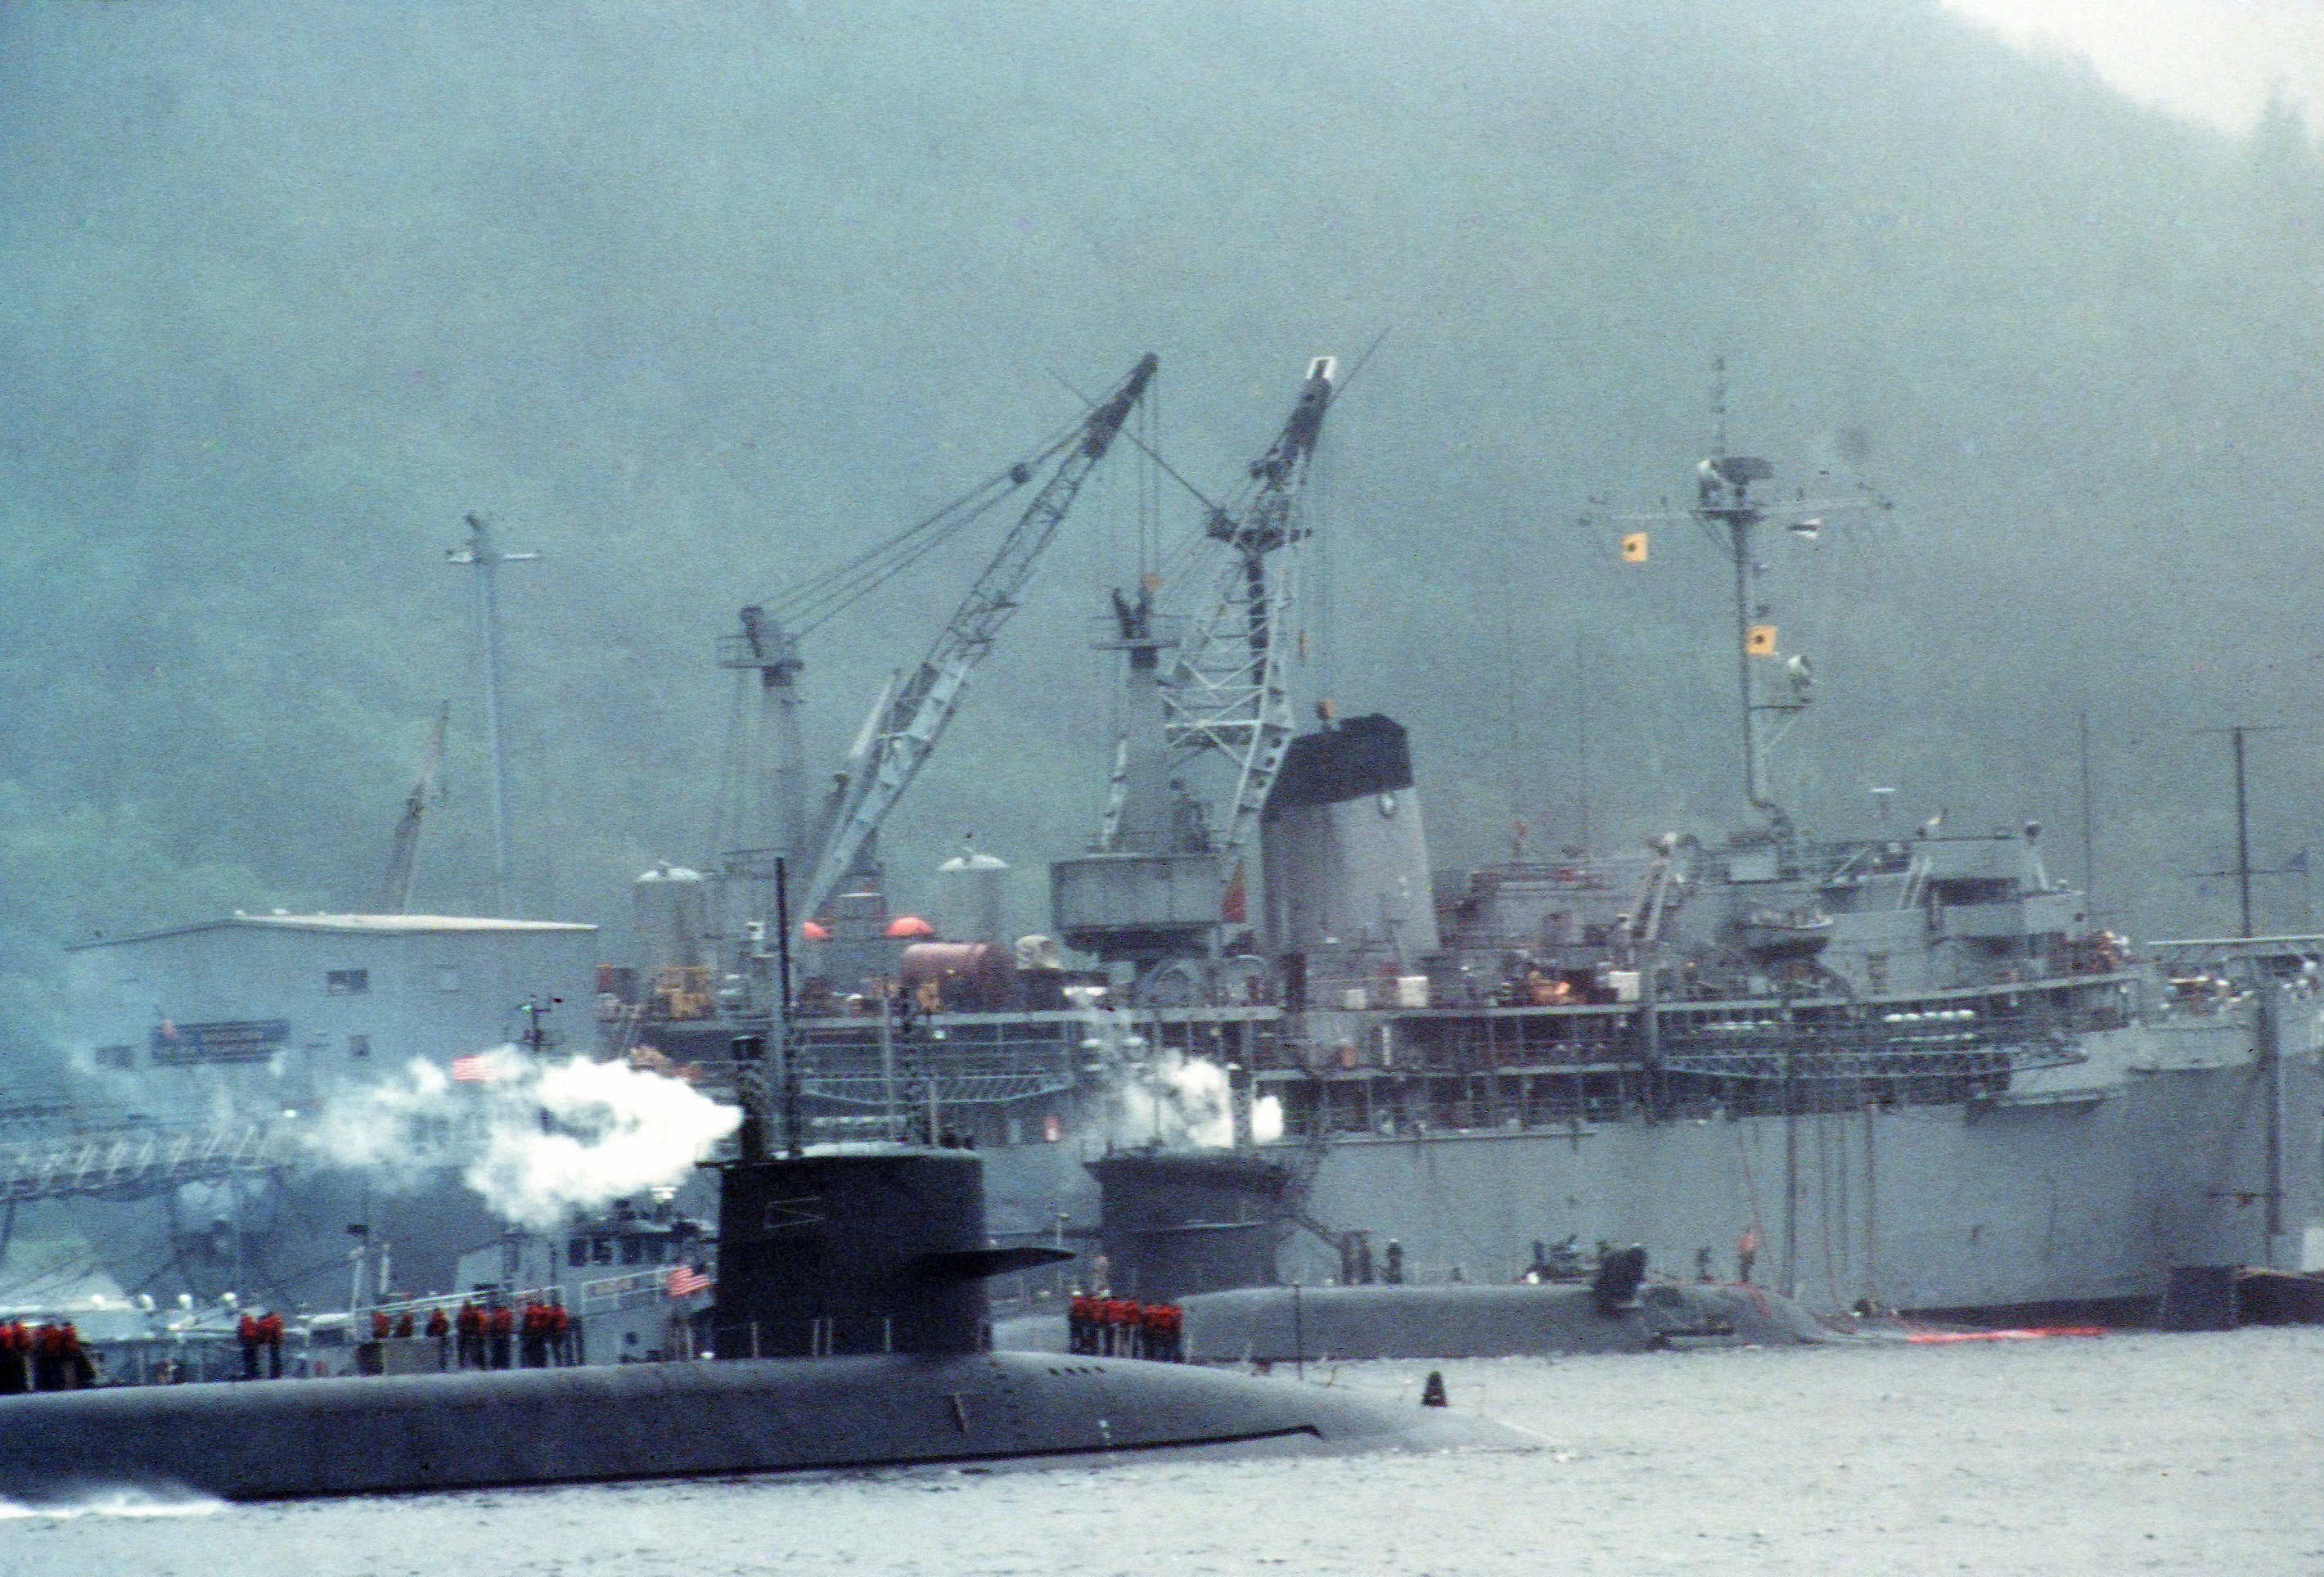 Two U.S. Navy submarines alongside the fleet ballistic missile submarine tender USS Hunley (AS-31) at Navy Fleet Ballistic Submarine Refit Site 1 at Holy Loch, Scotland (UK), 1 December 1985